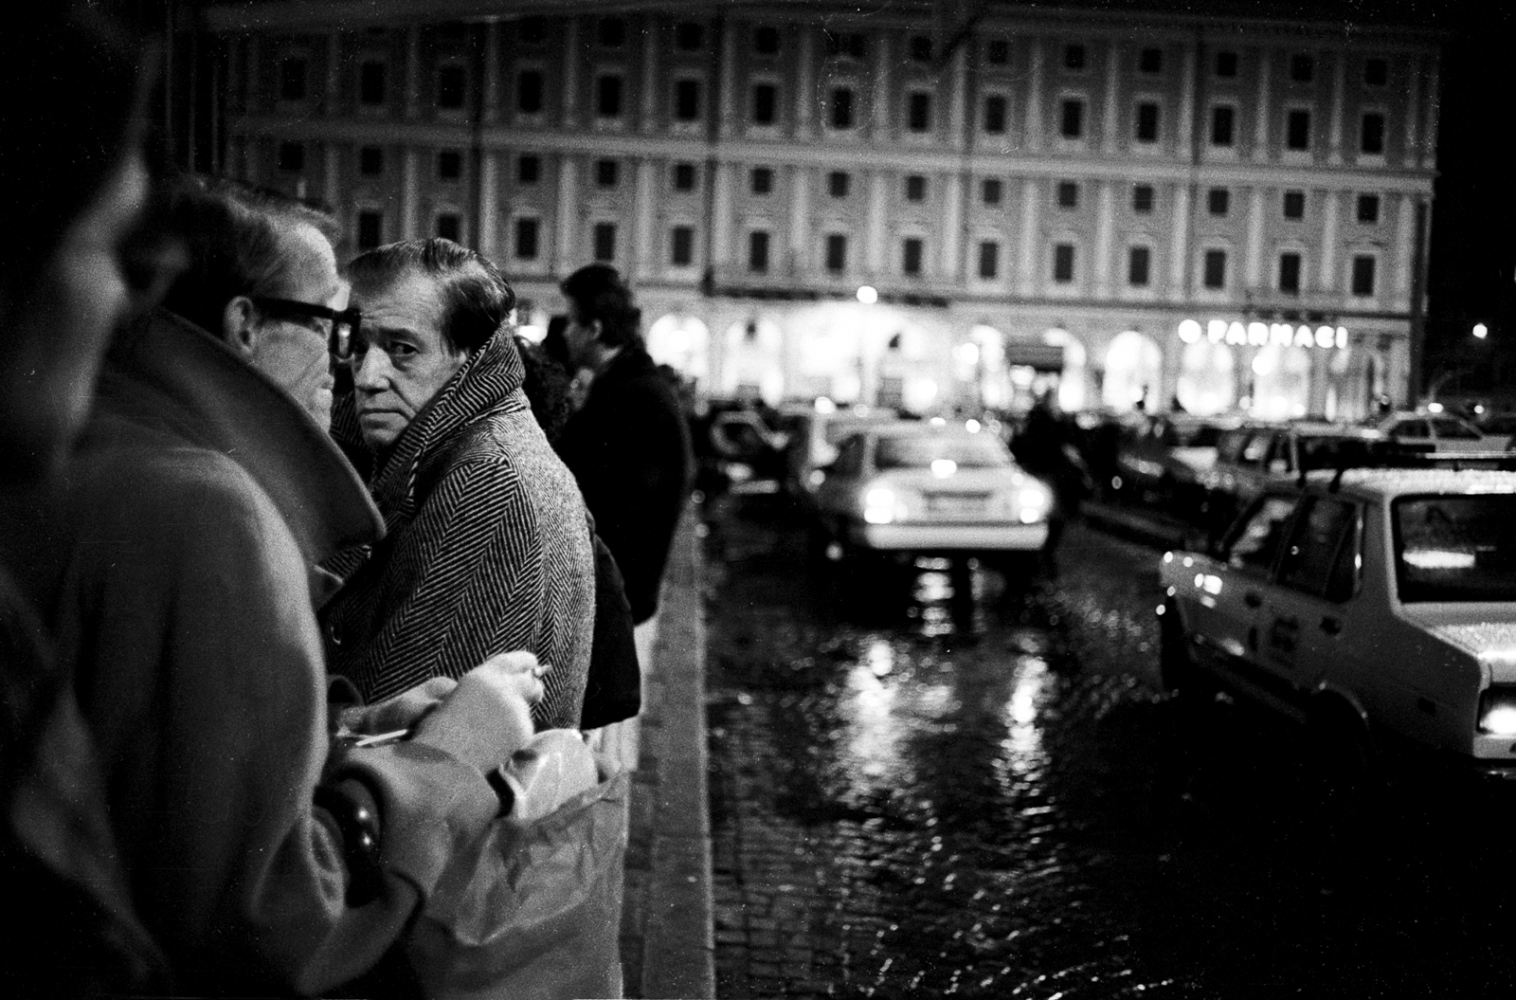 Taxi stand, Rome.